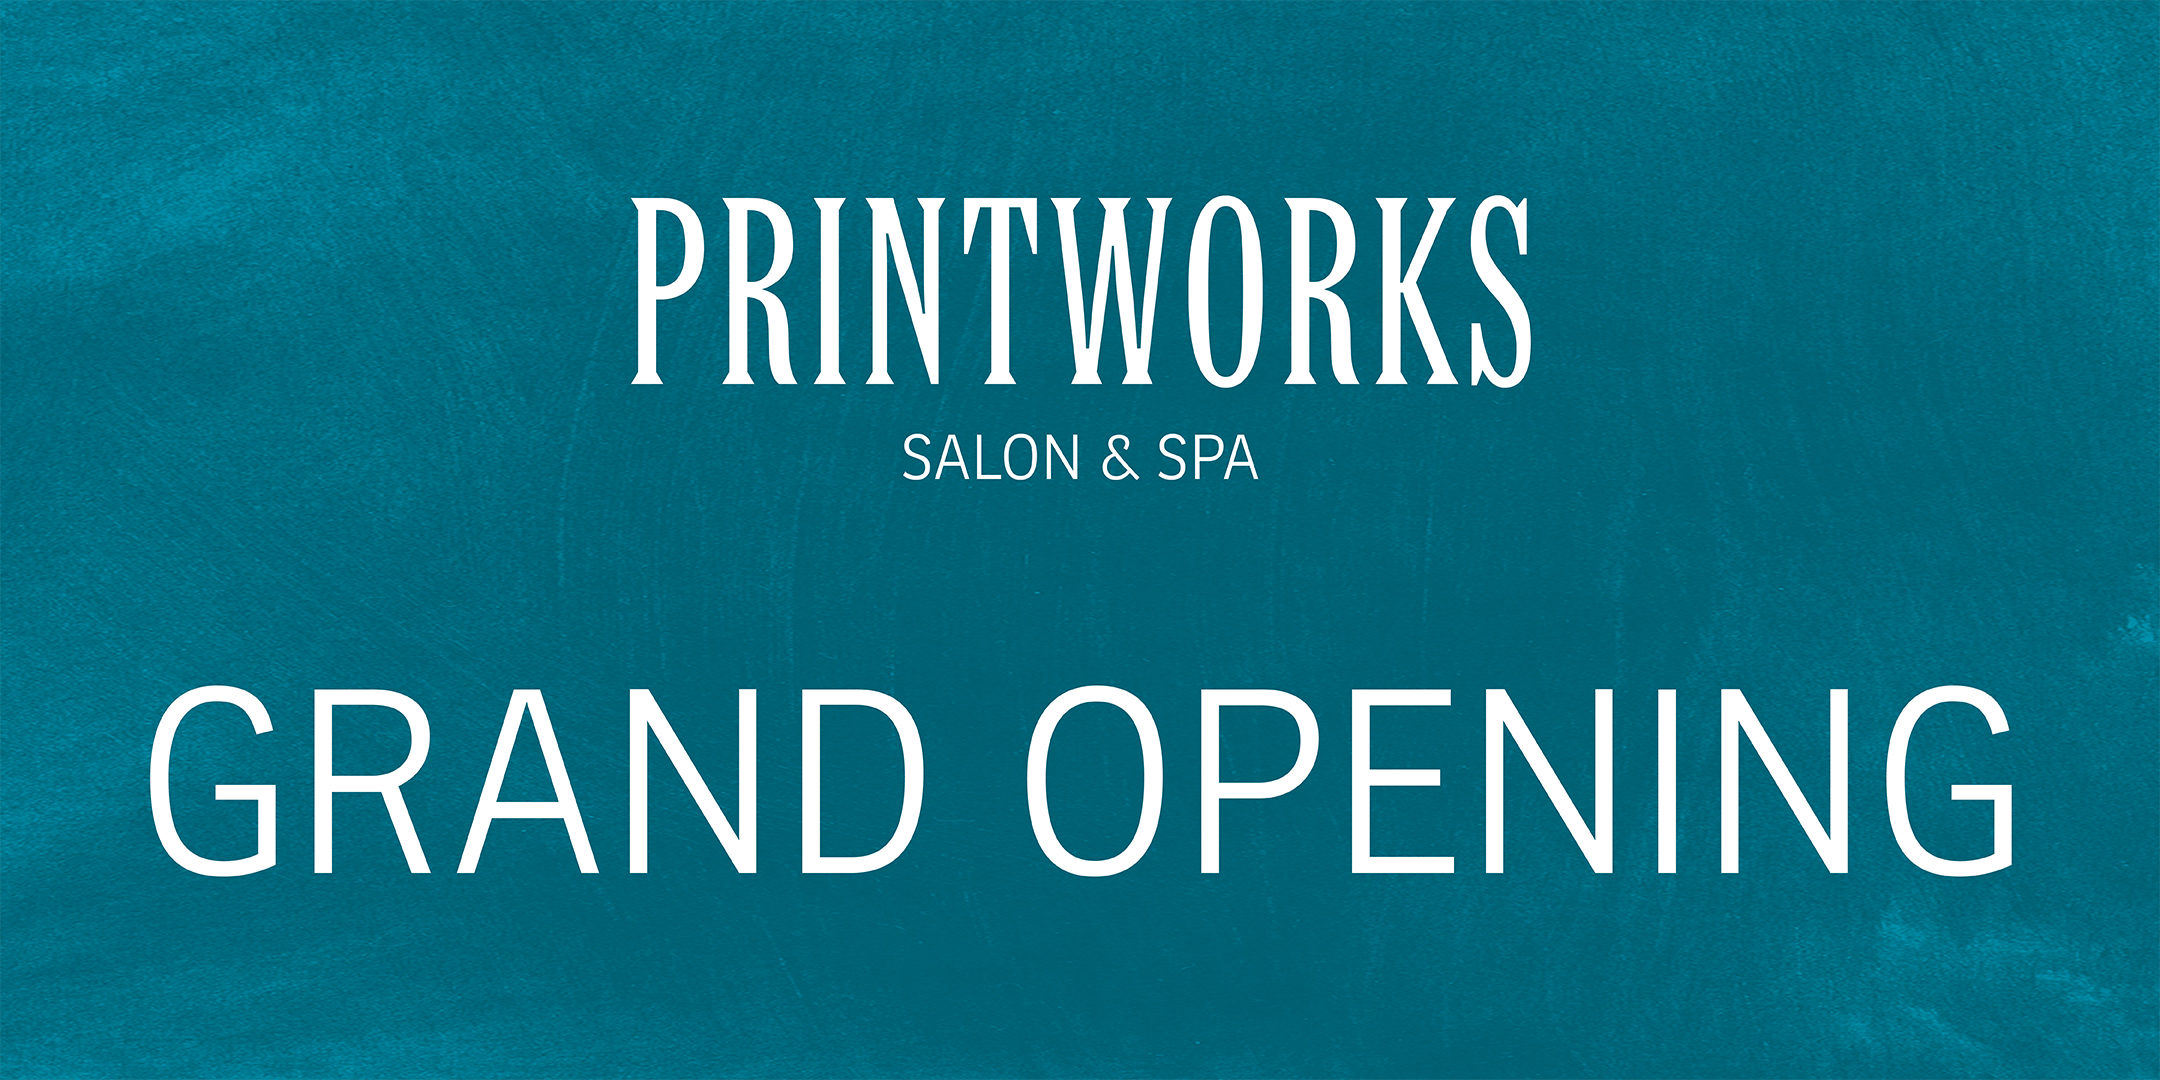 Printworks Salon & Spa Grand Opening!